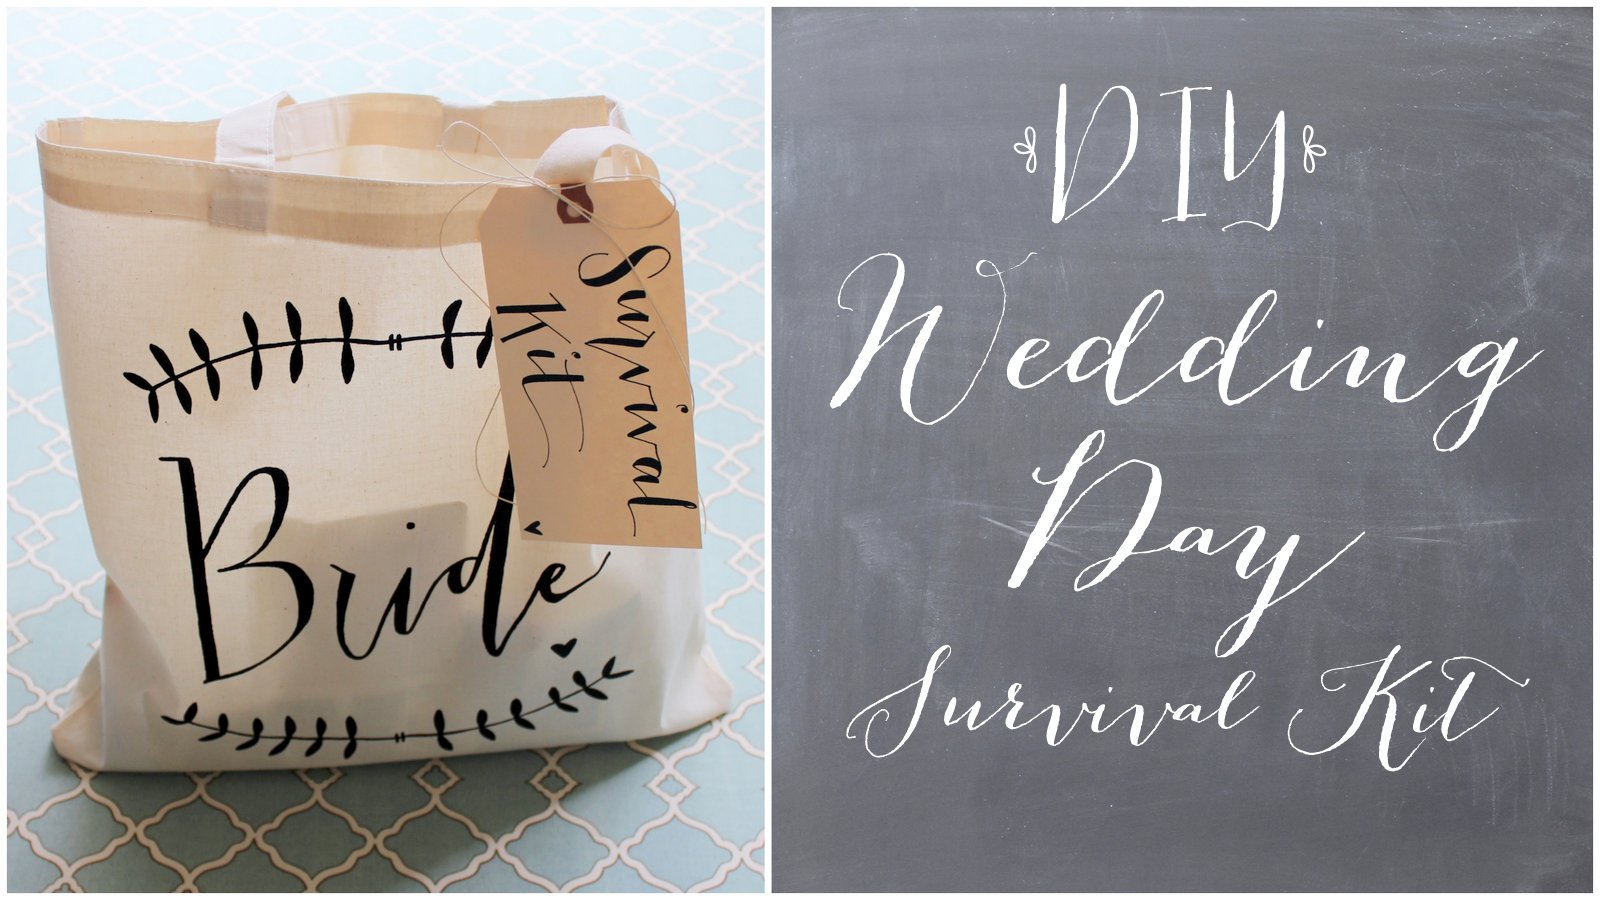 Every Bride Wedding Survival Kit